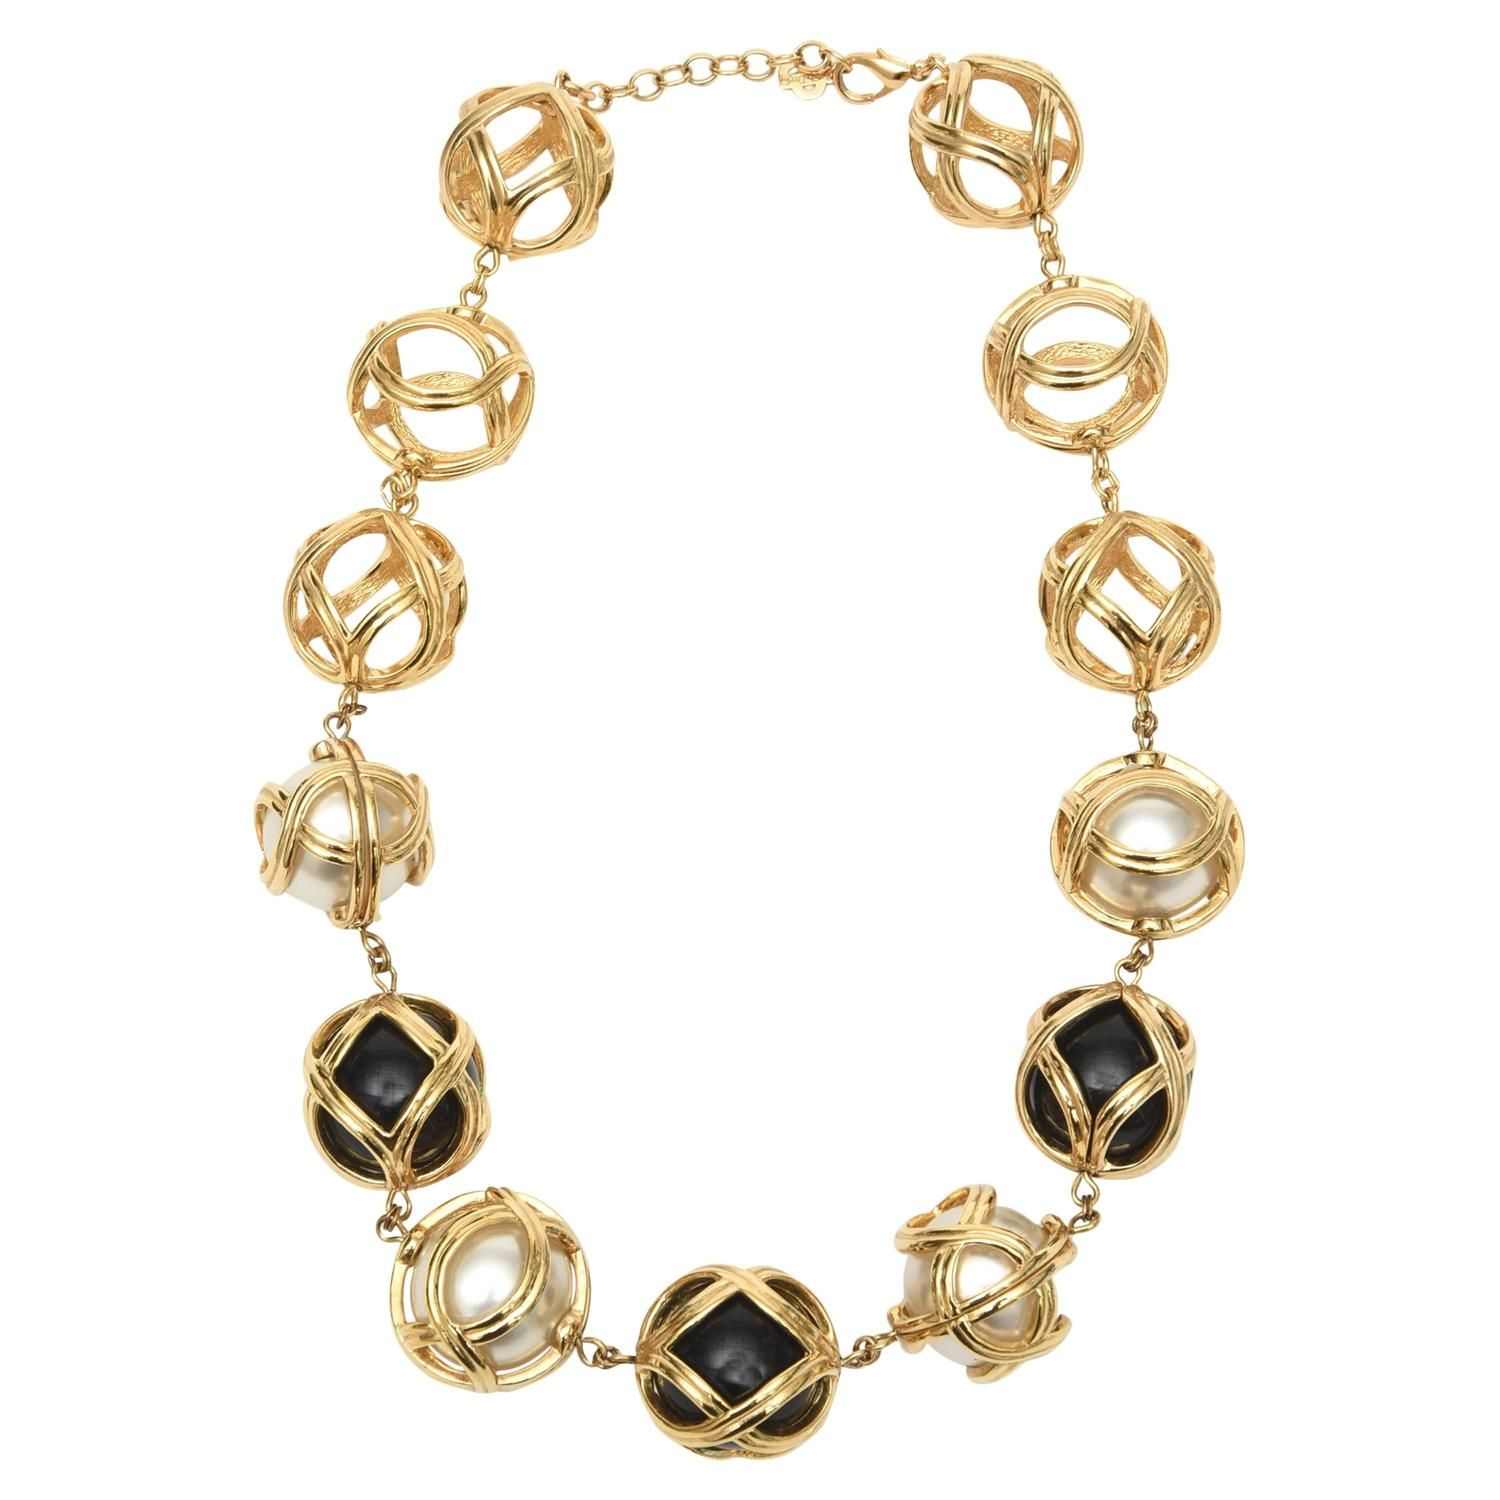 Vintage Gold Tone Box Chain with Gold Balls /& Faux Pearls